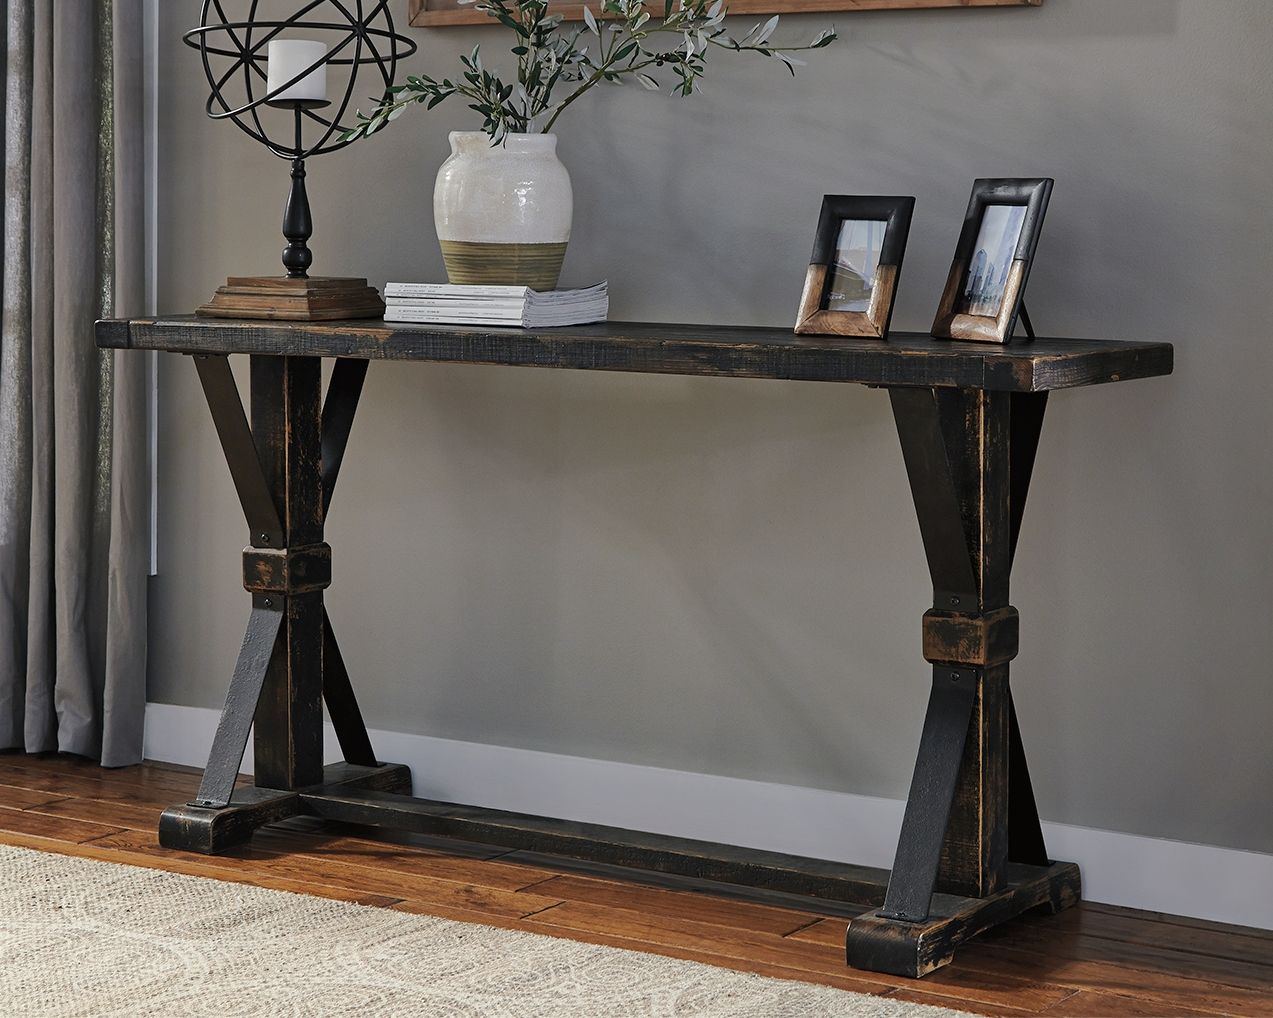 Awe Inspiring Beckendorf Sofa Console Table Products In 2019 Black Download Free Architecture Designs Scobabritishbridgeorg